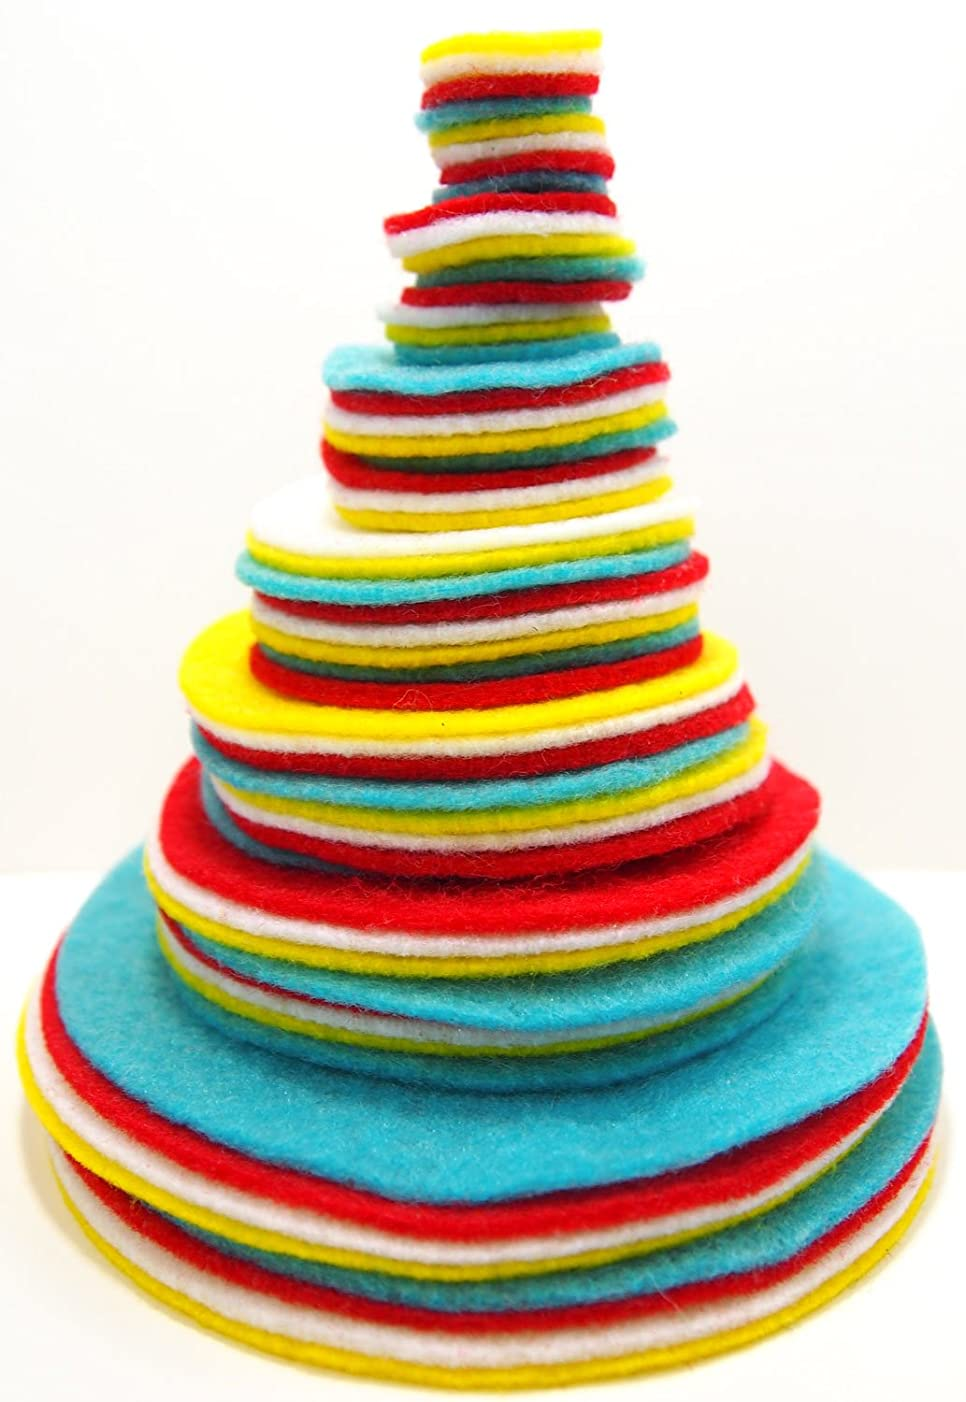 Playfully Ever After 3/4 to 4 Inch Assorted Sizes Felt Circles Color Combo Pack with Red, Turquoise Blue, White, Yellow (56pc)